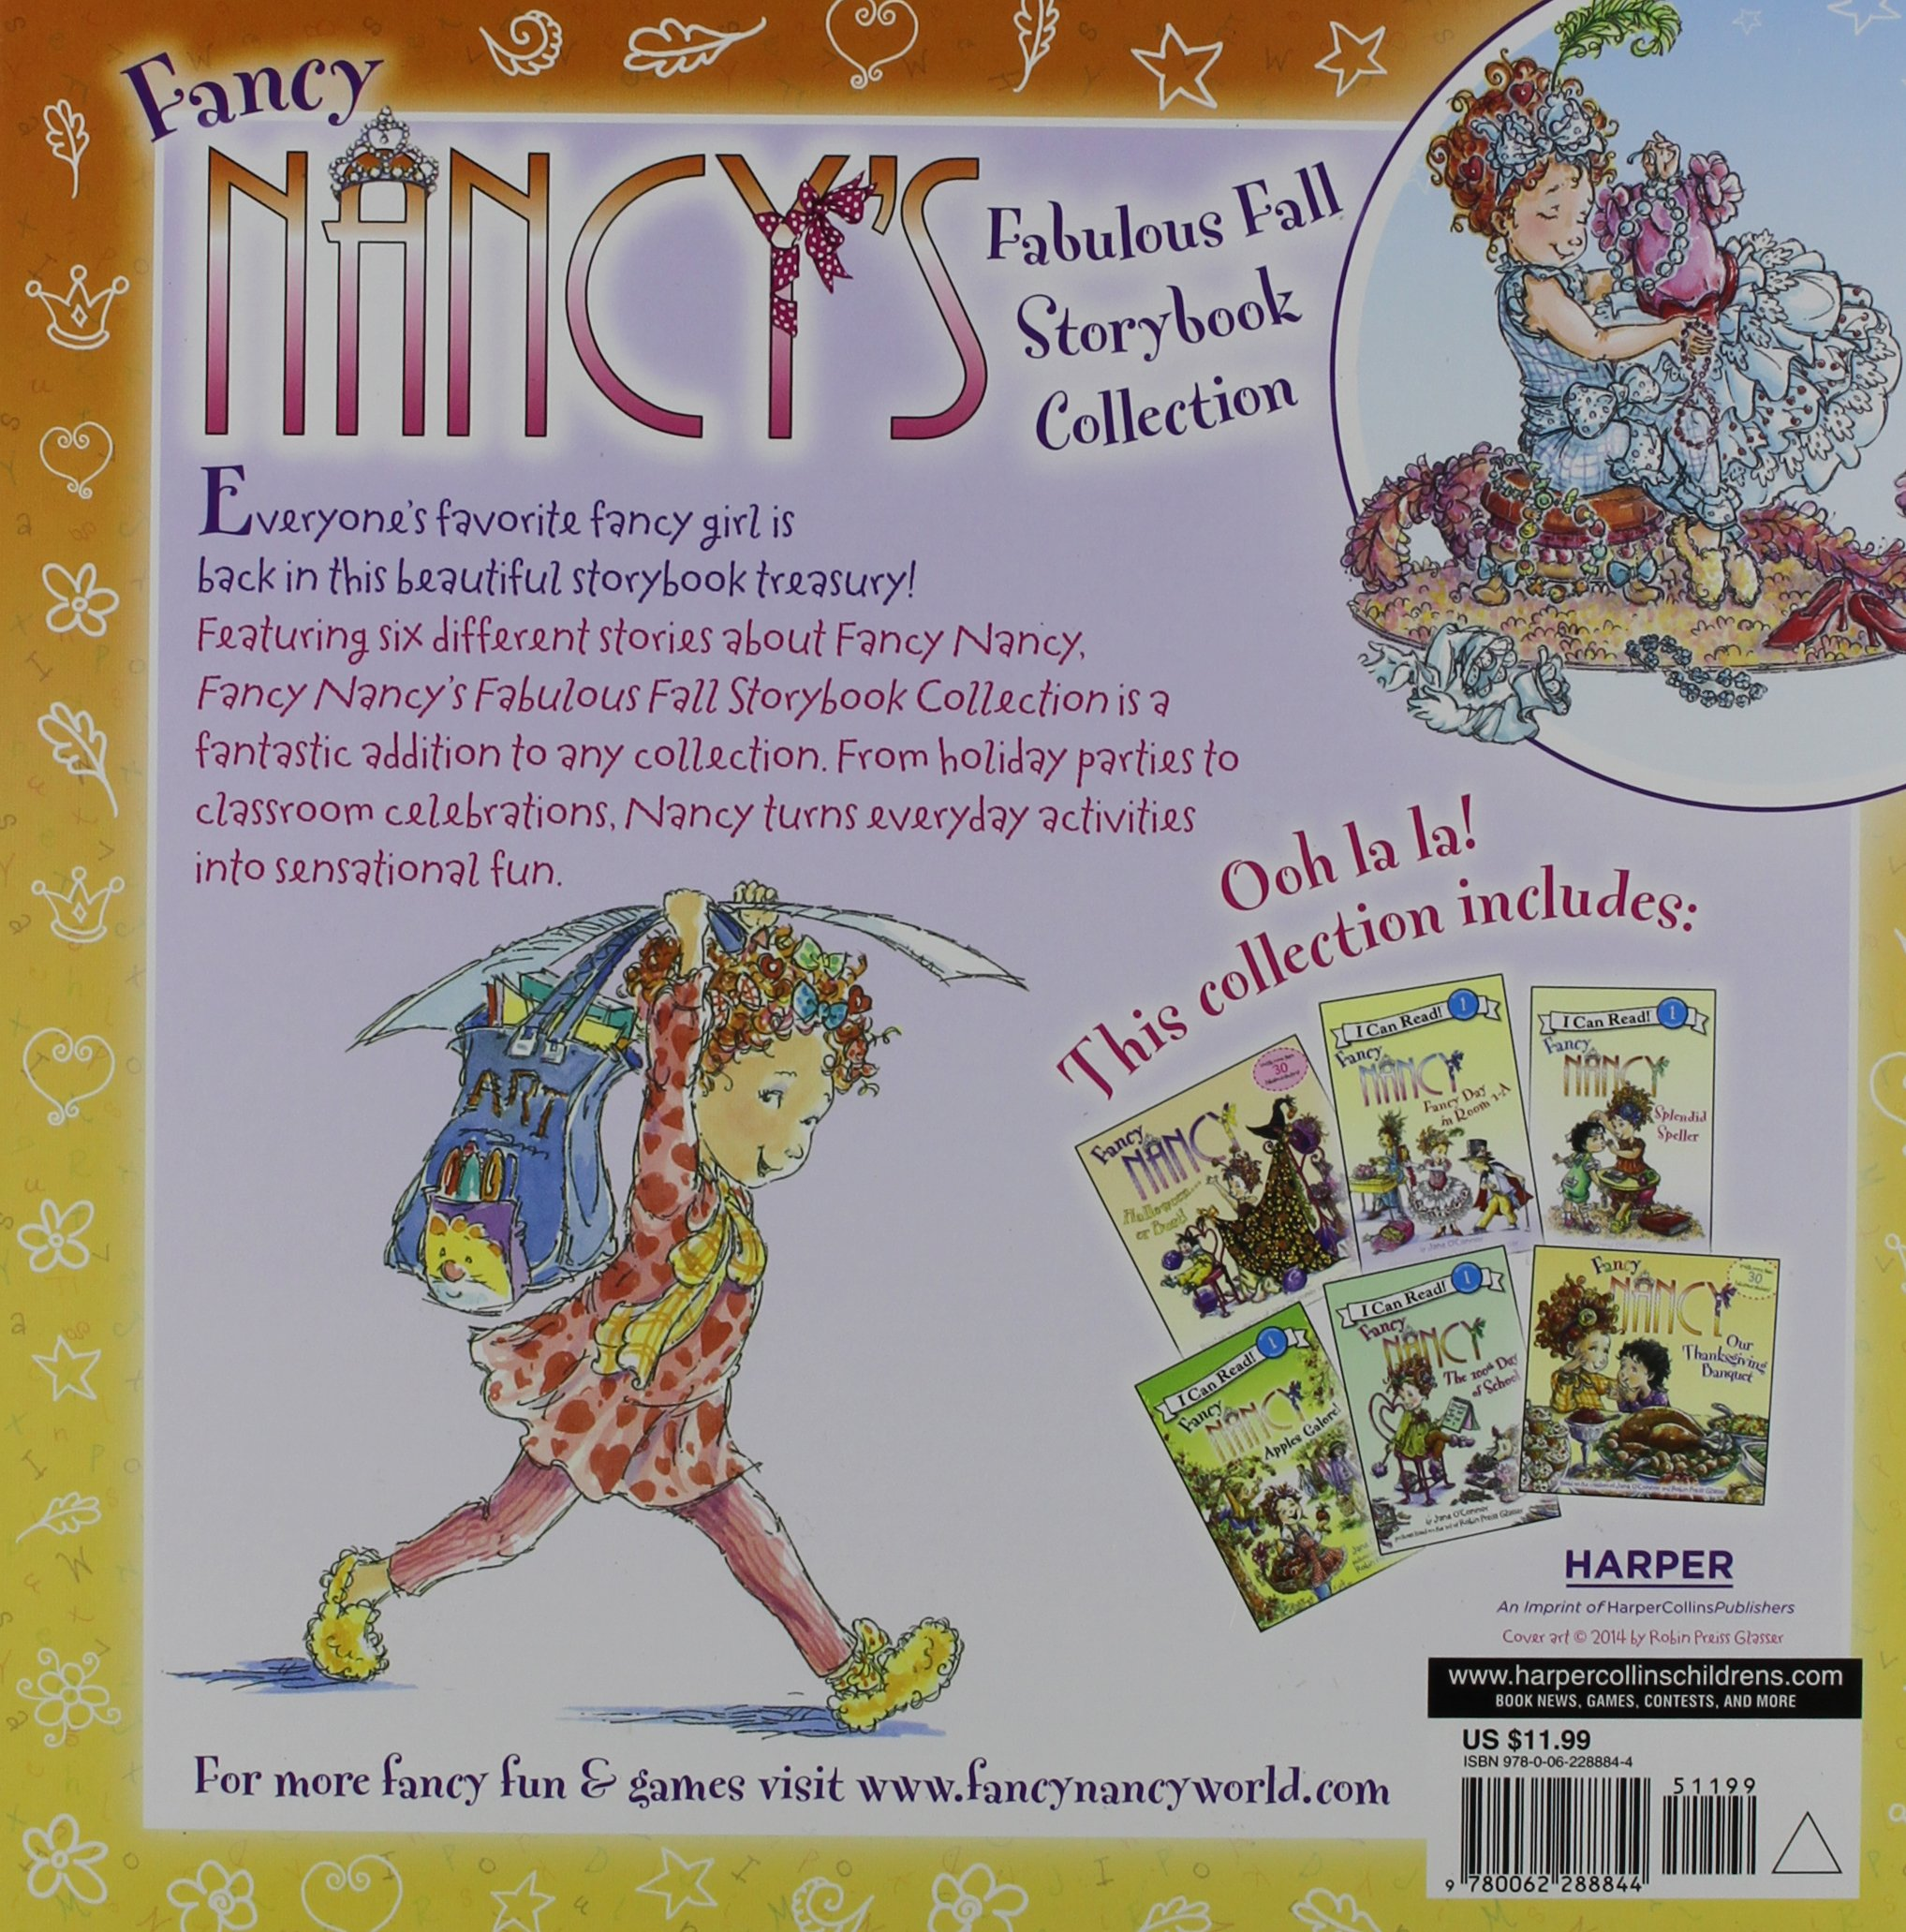 Fancy Nancy's Fabulous Fall Storybook Collection by HarperCollins